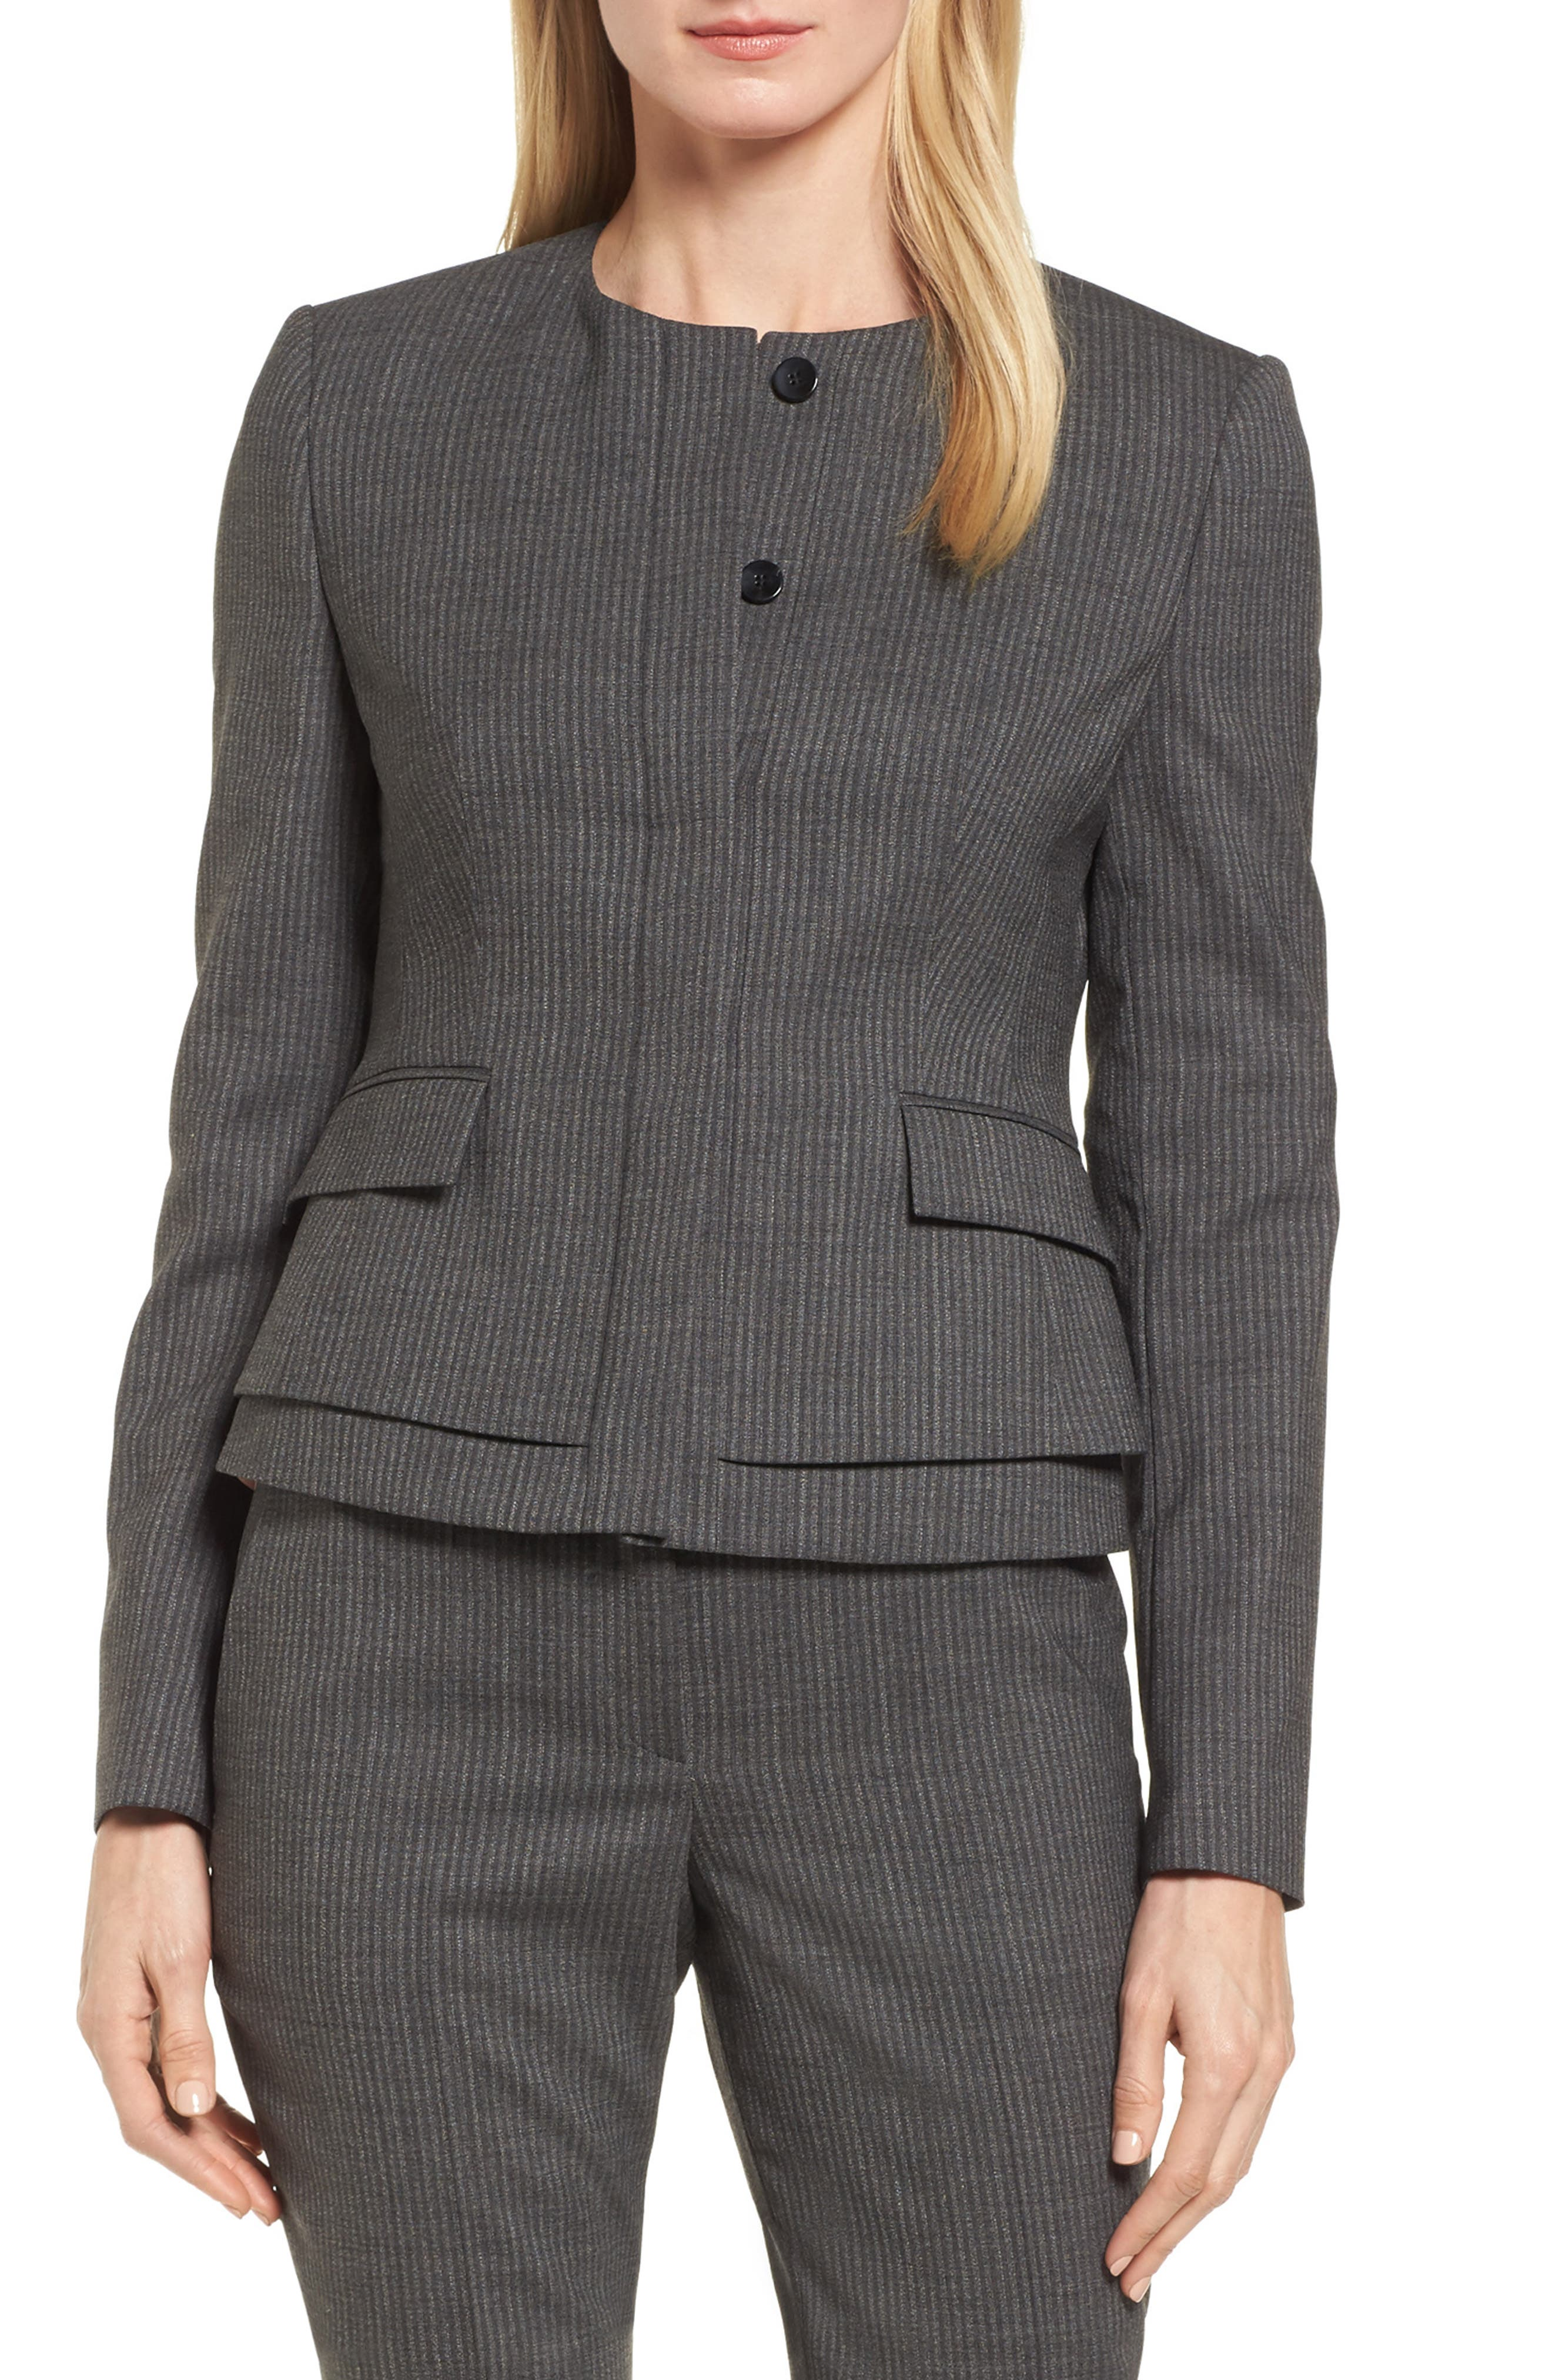 Jasyma Stripe Wool Suit Jacket,                         Main,                         color, 070